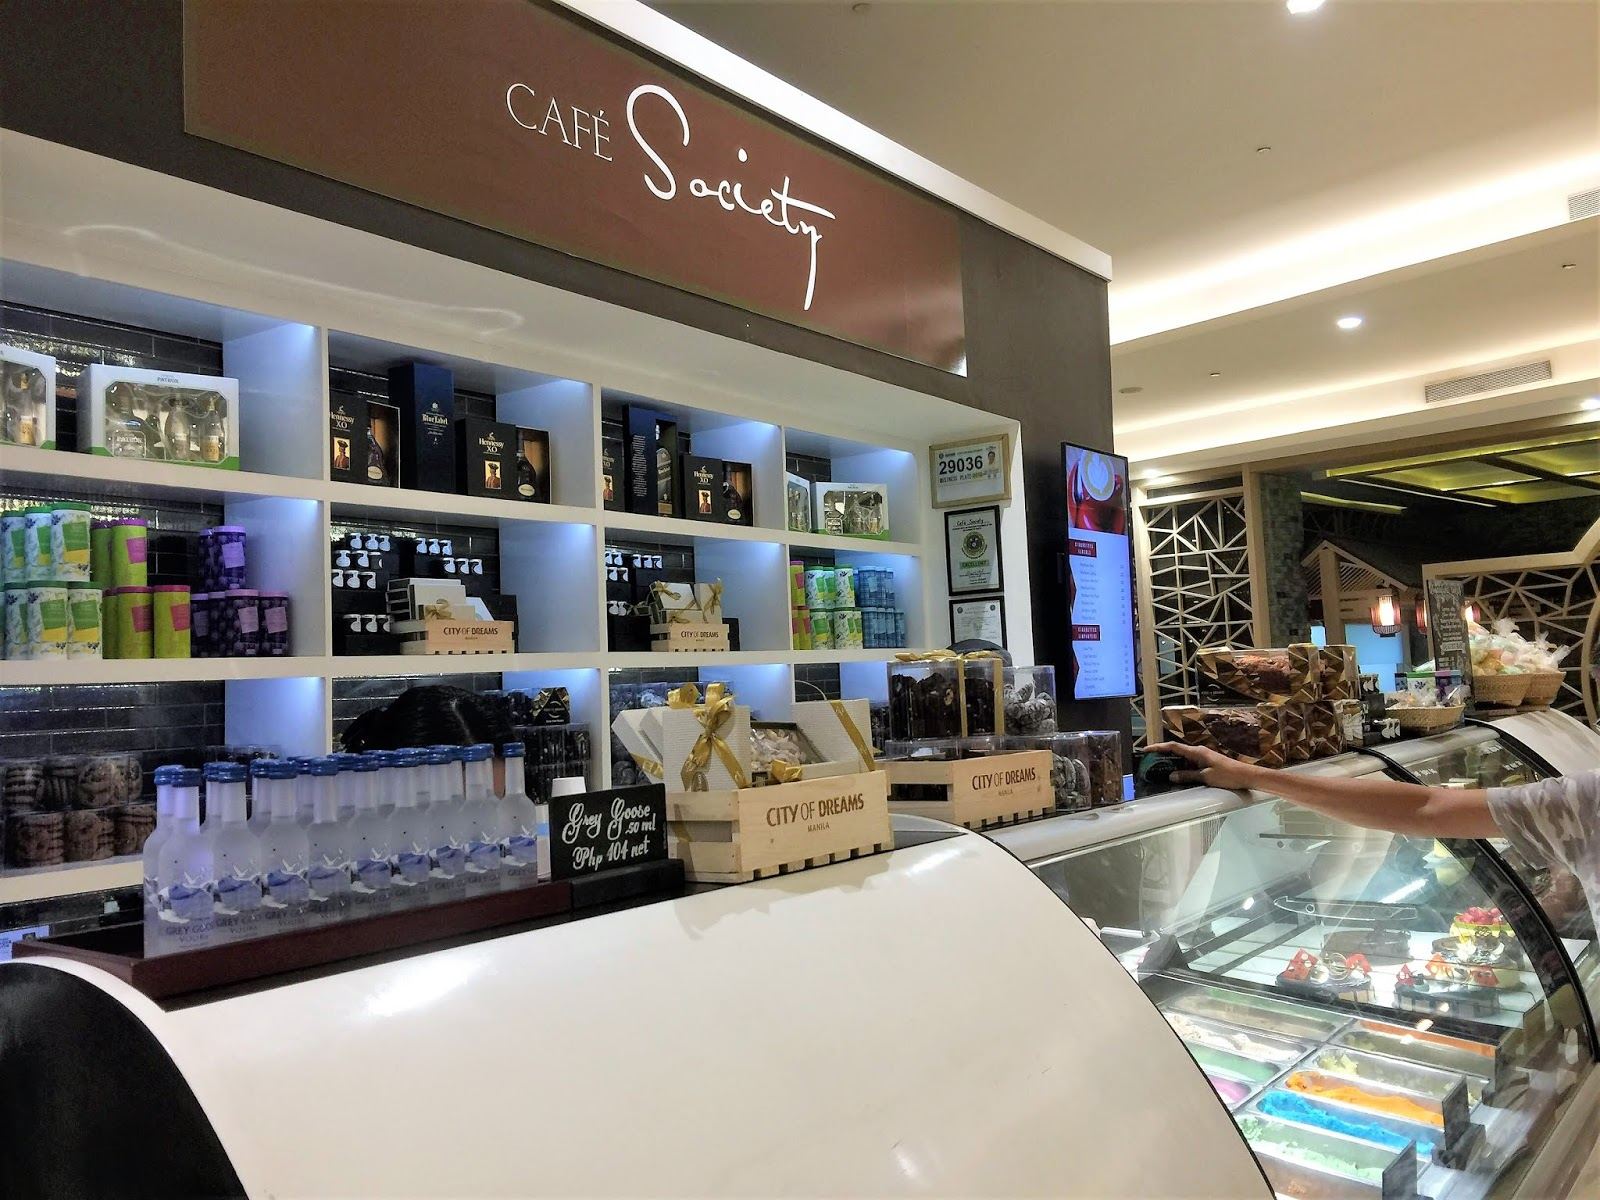 Cafe Society in City of Dreams Manila's Sorbet, Dessert and Alcohol section